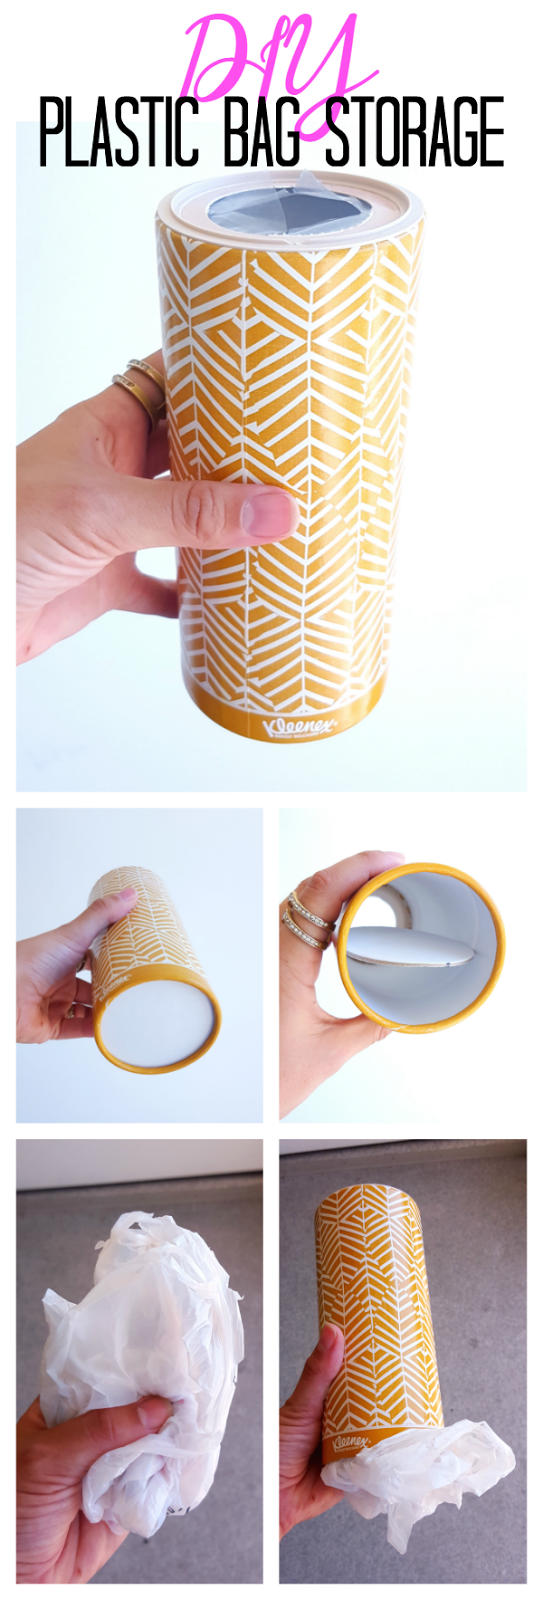 Reuse Kleenex Quick DIY Plastic Bag Holder